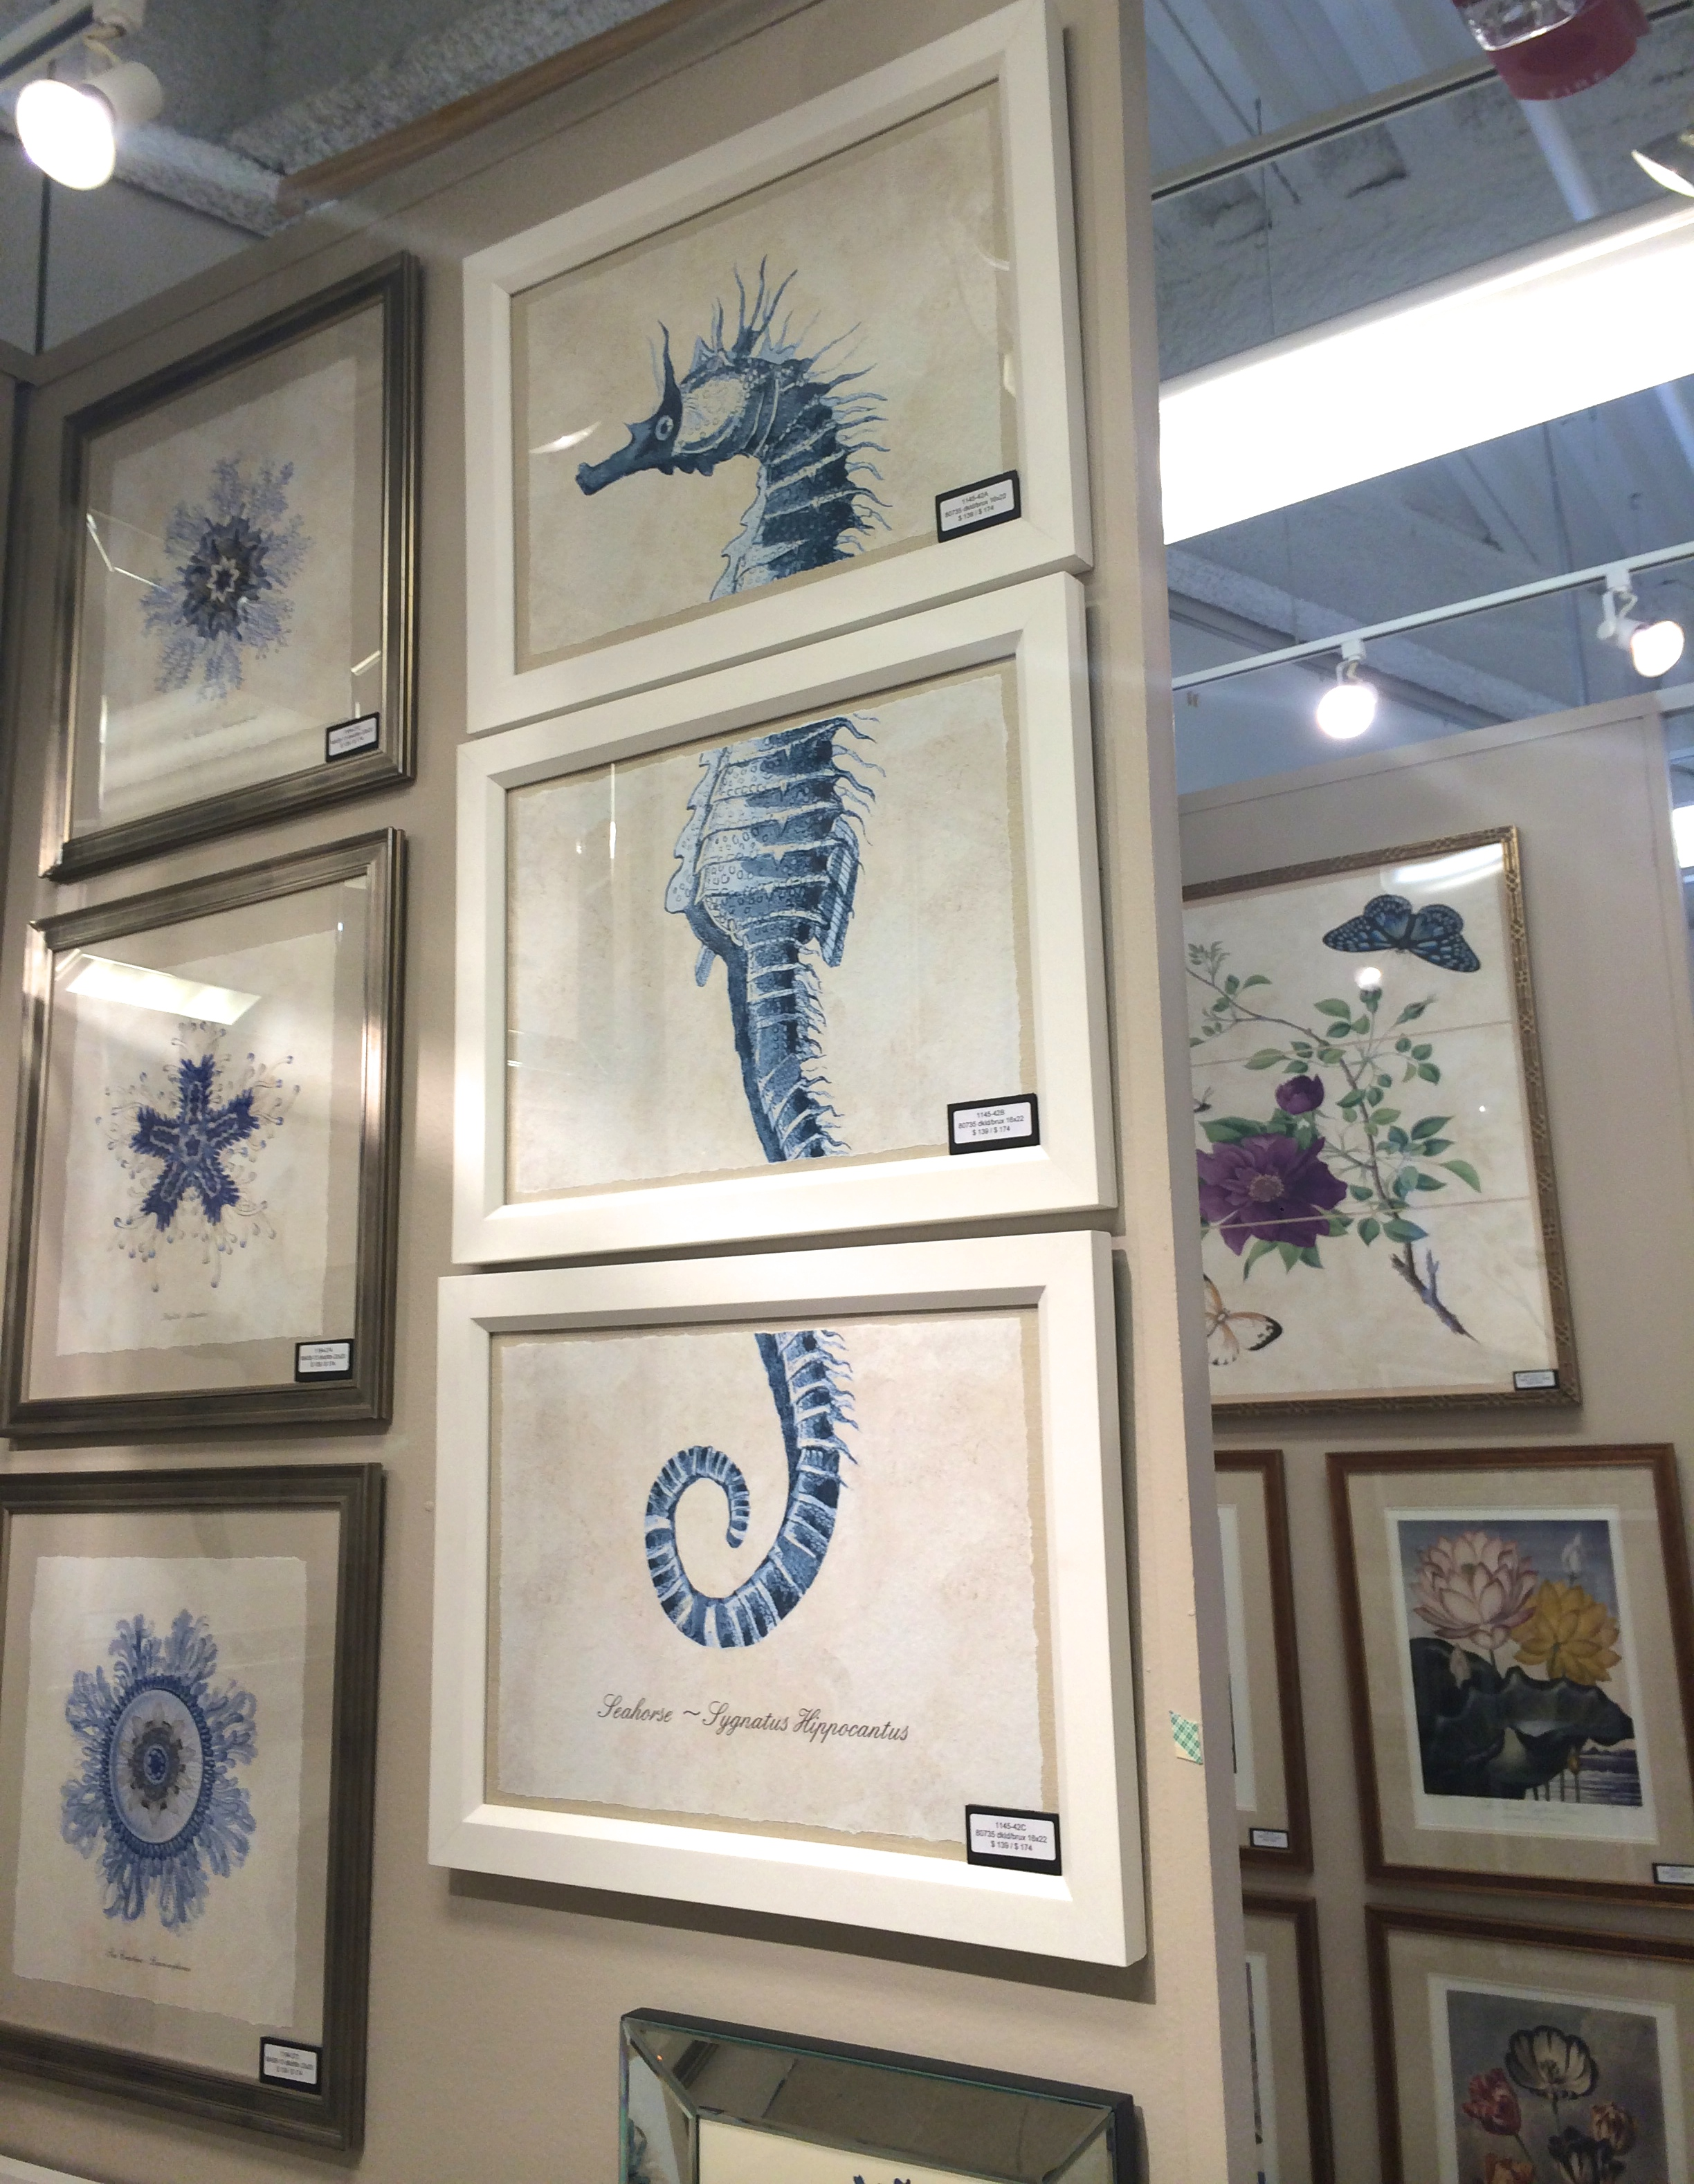 Love the seahorse - lots of other fun sea creature prints available here, too!